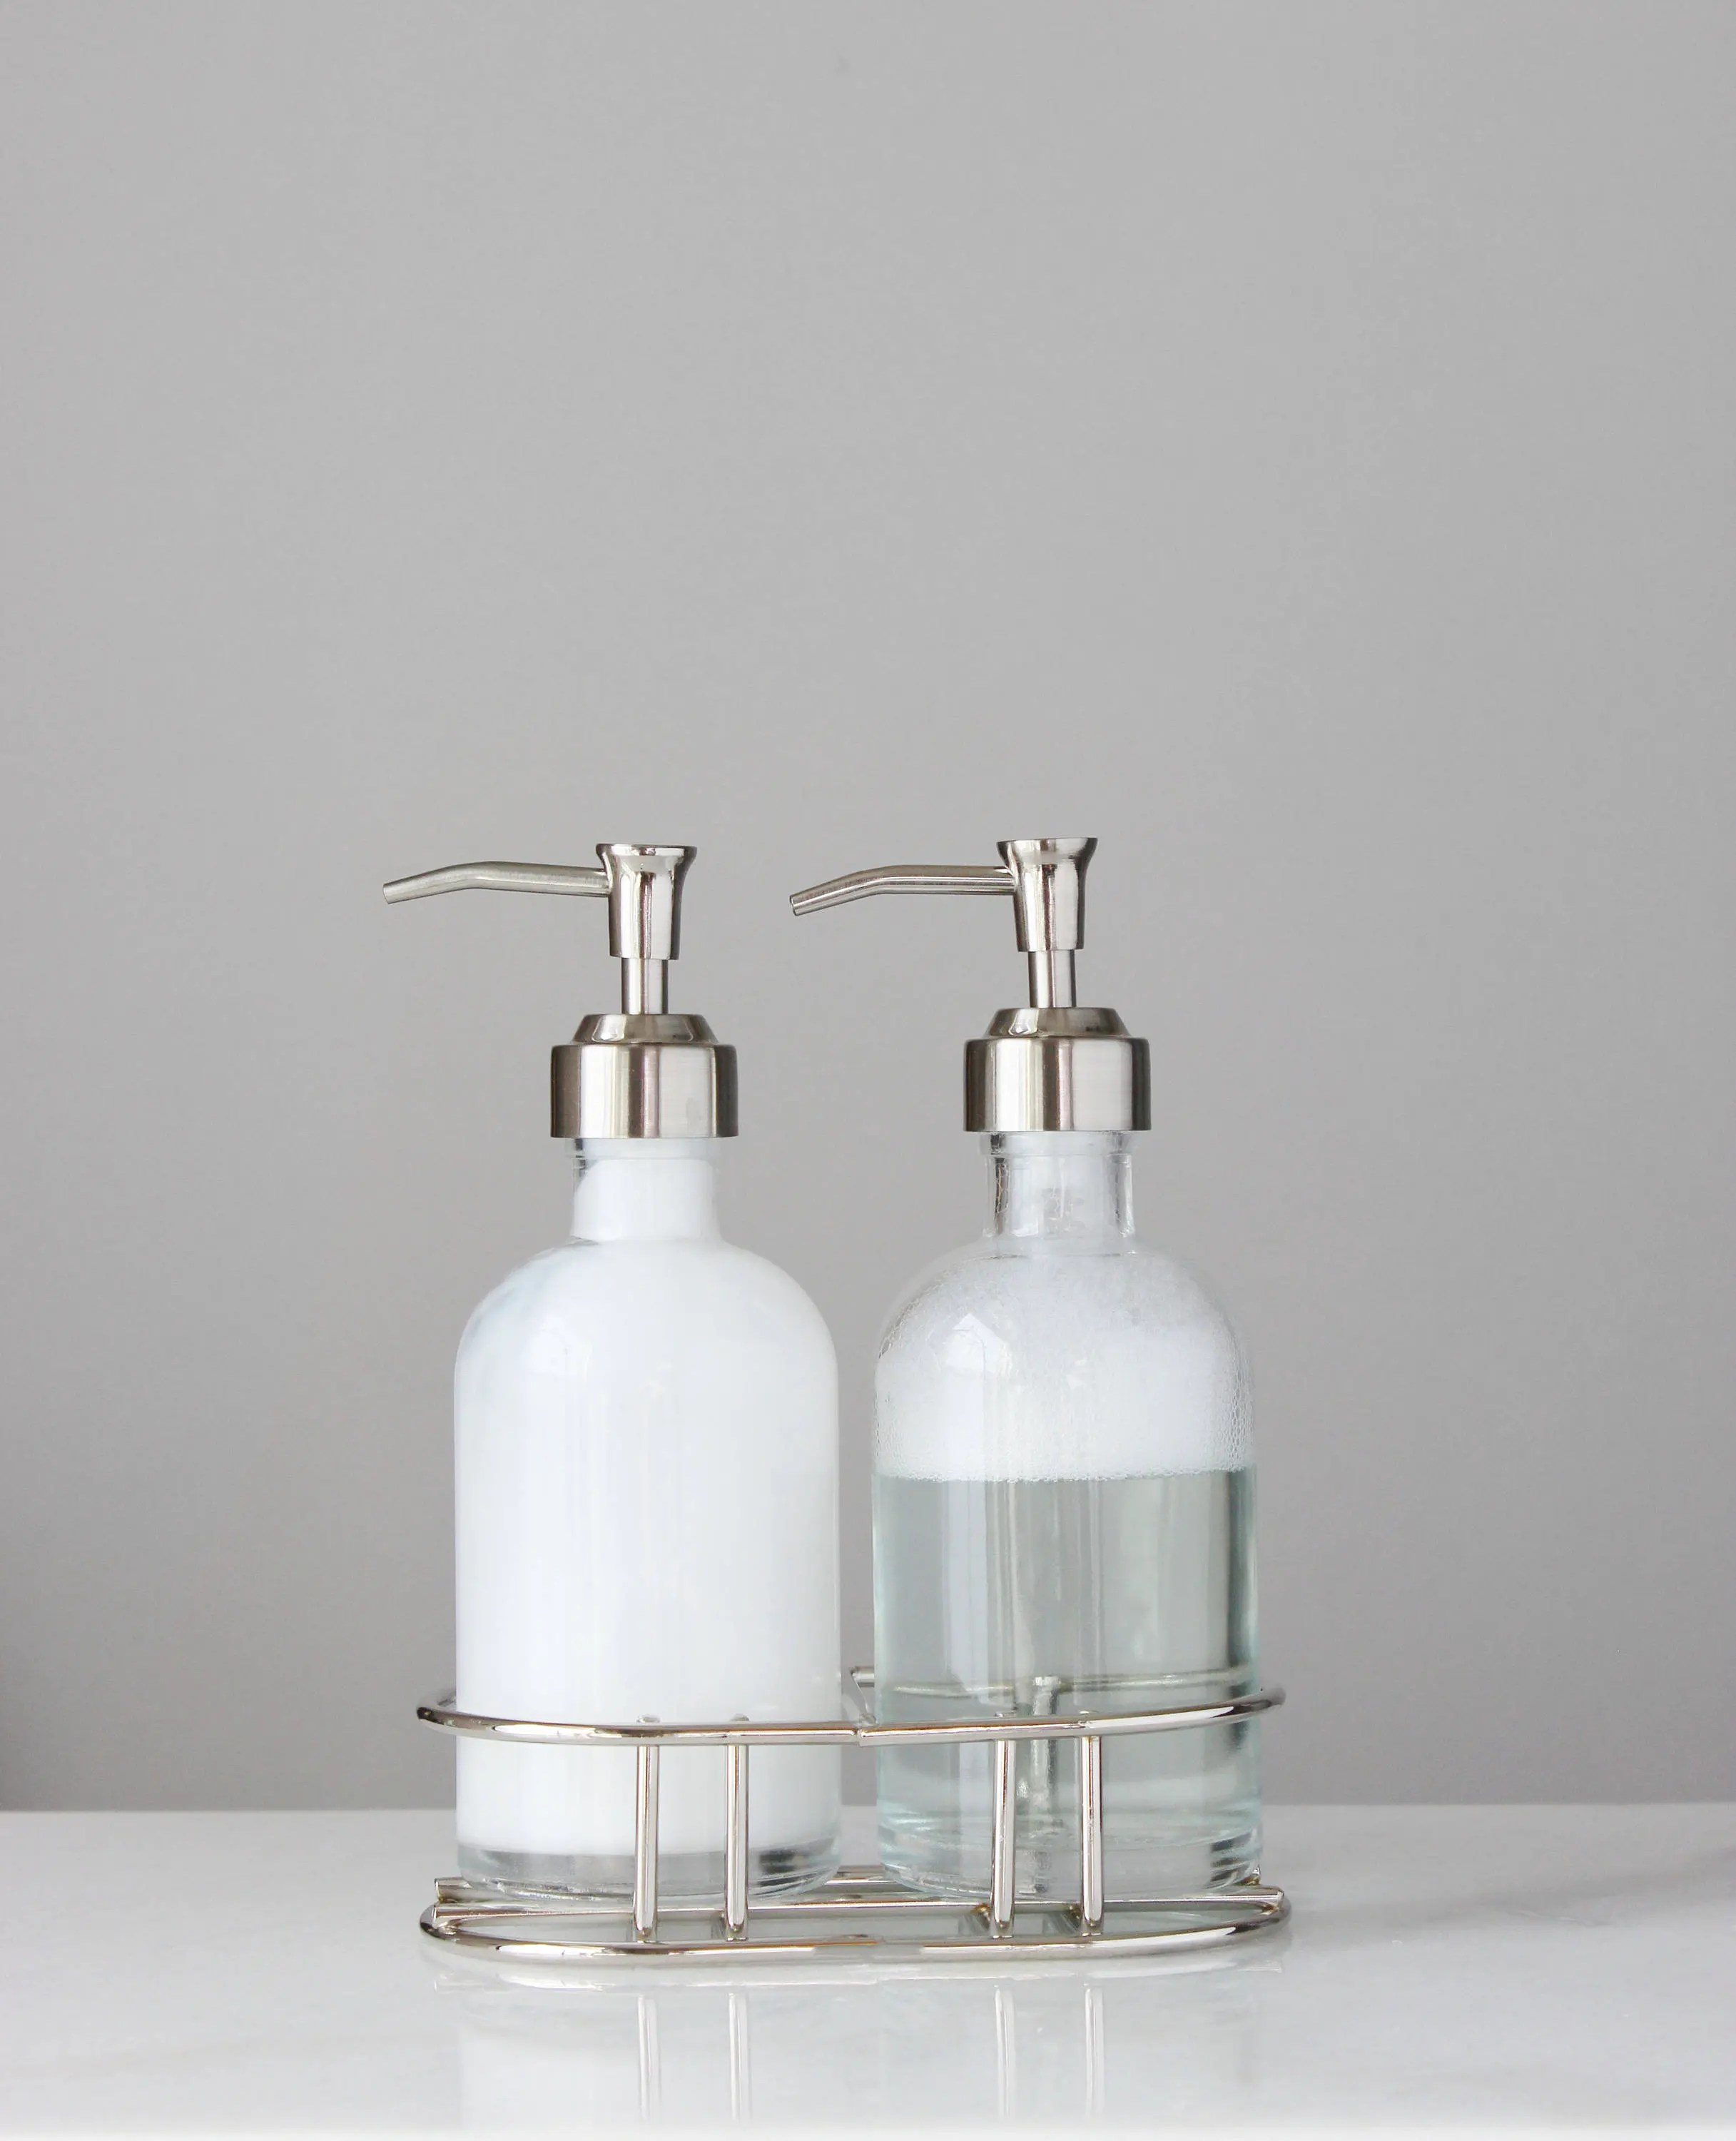 Unique Hand Soap Dispenser Glass Soap Dispenser Set With Metal Pump Chrome Silver Metal Caddy